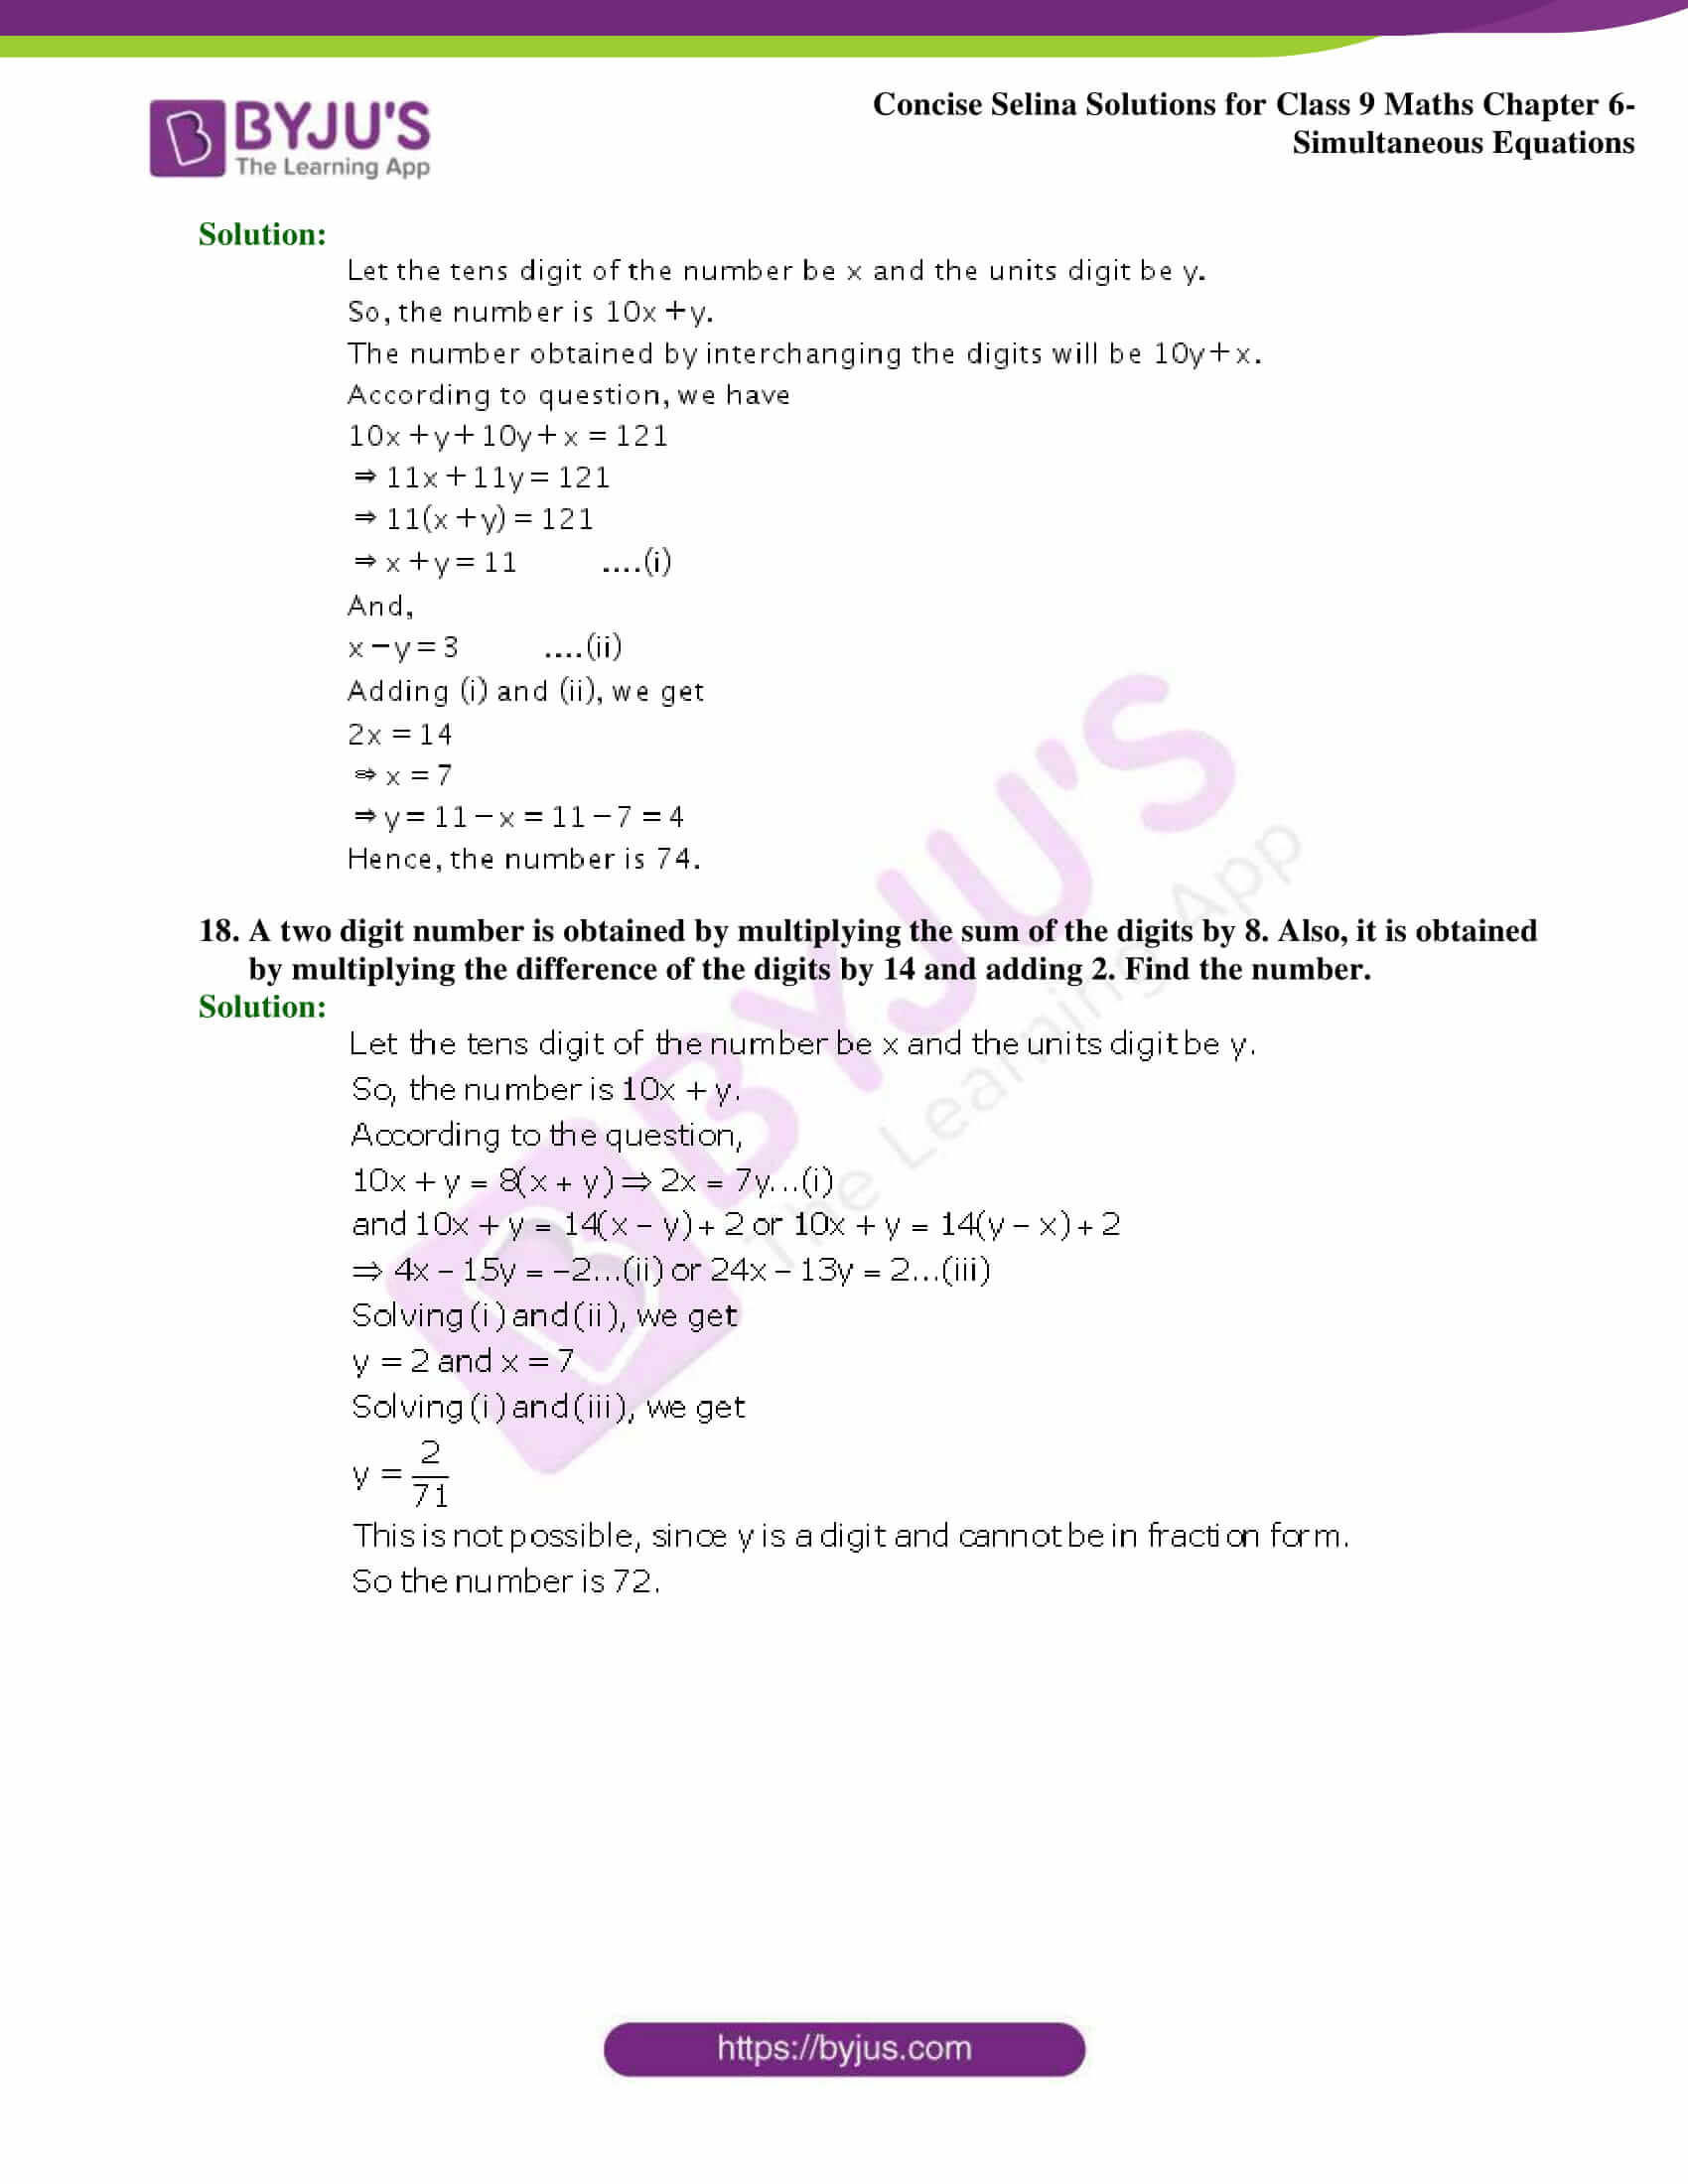 Selina Solutions Class 9 Maths Chapter 6 Simultaneous Equations part 46